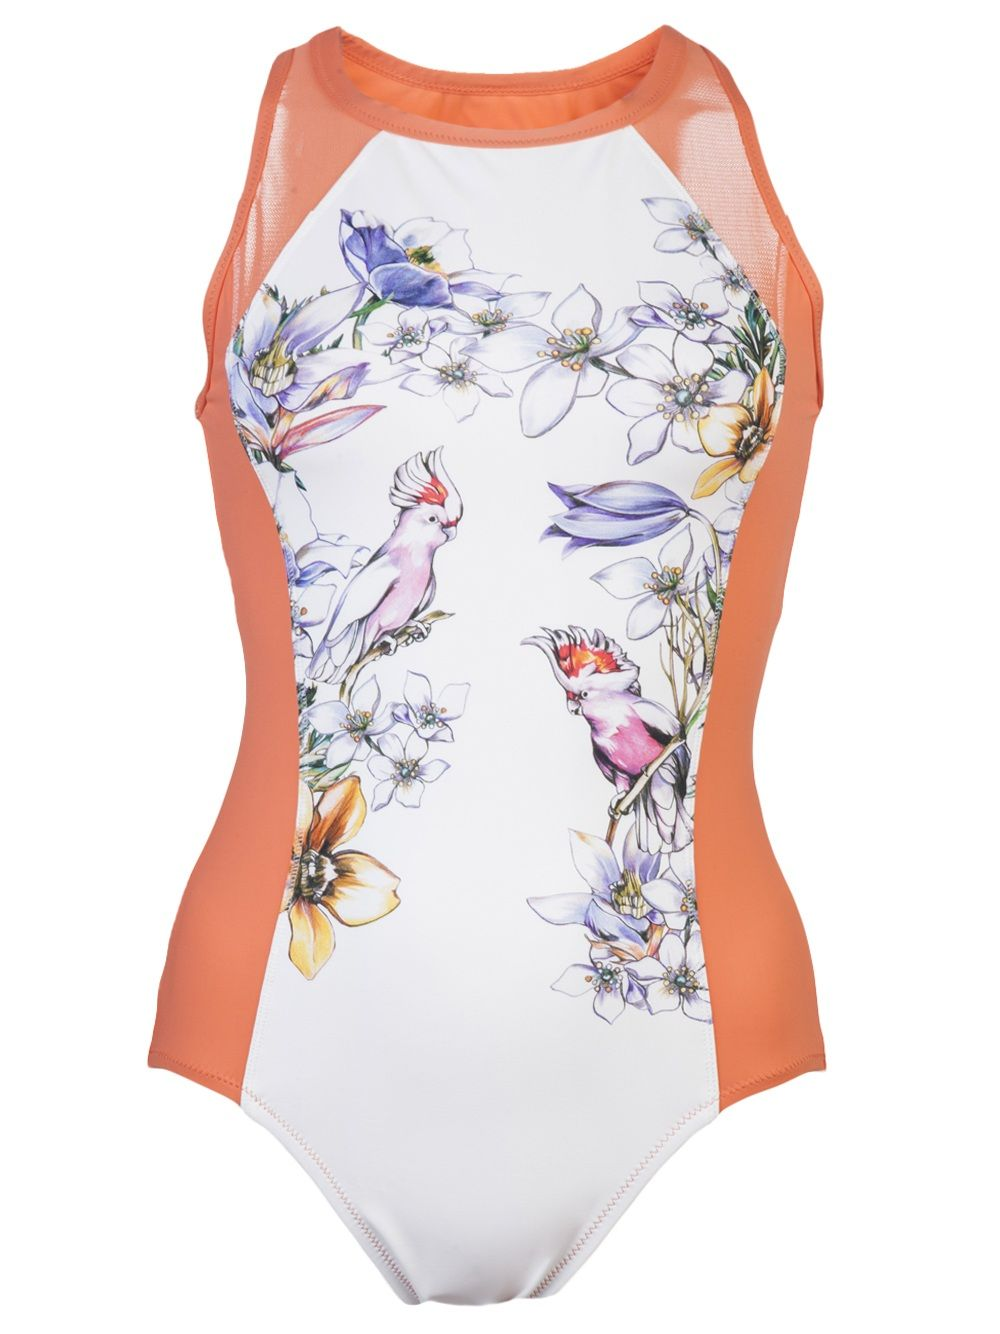 100 Swimsuits For Every Body Type